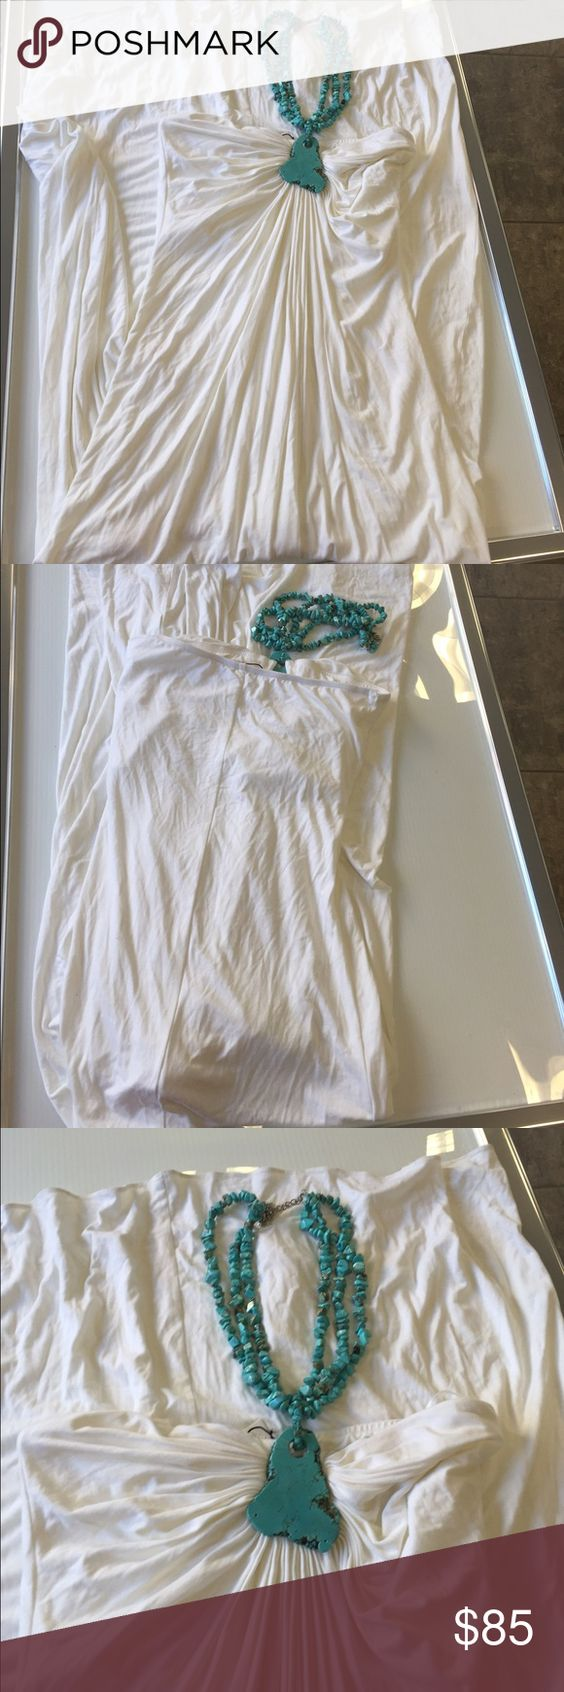 Sky white stone detail maxi summer dress large new Sky white stone detail maxi summer dress size large new without tags please note the bottom hem  is  a little dirty from being tried  on and handled in store please see pictures might need to be washed before using Sky Dresses Maxi